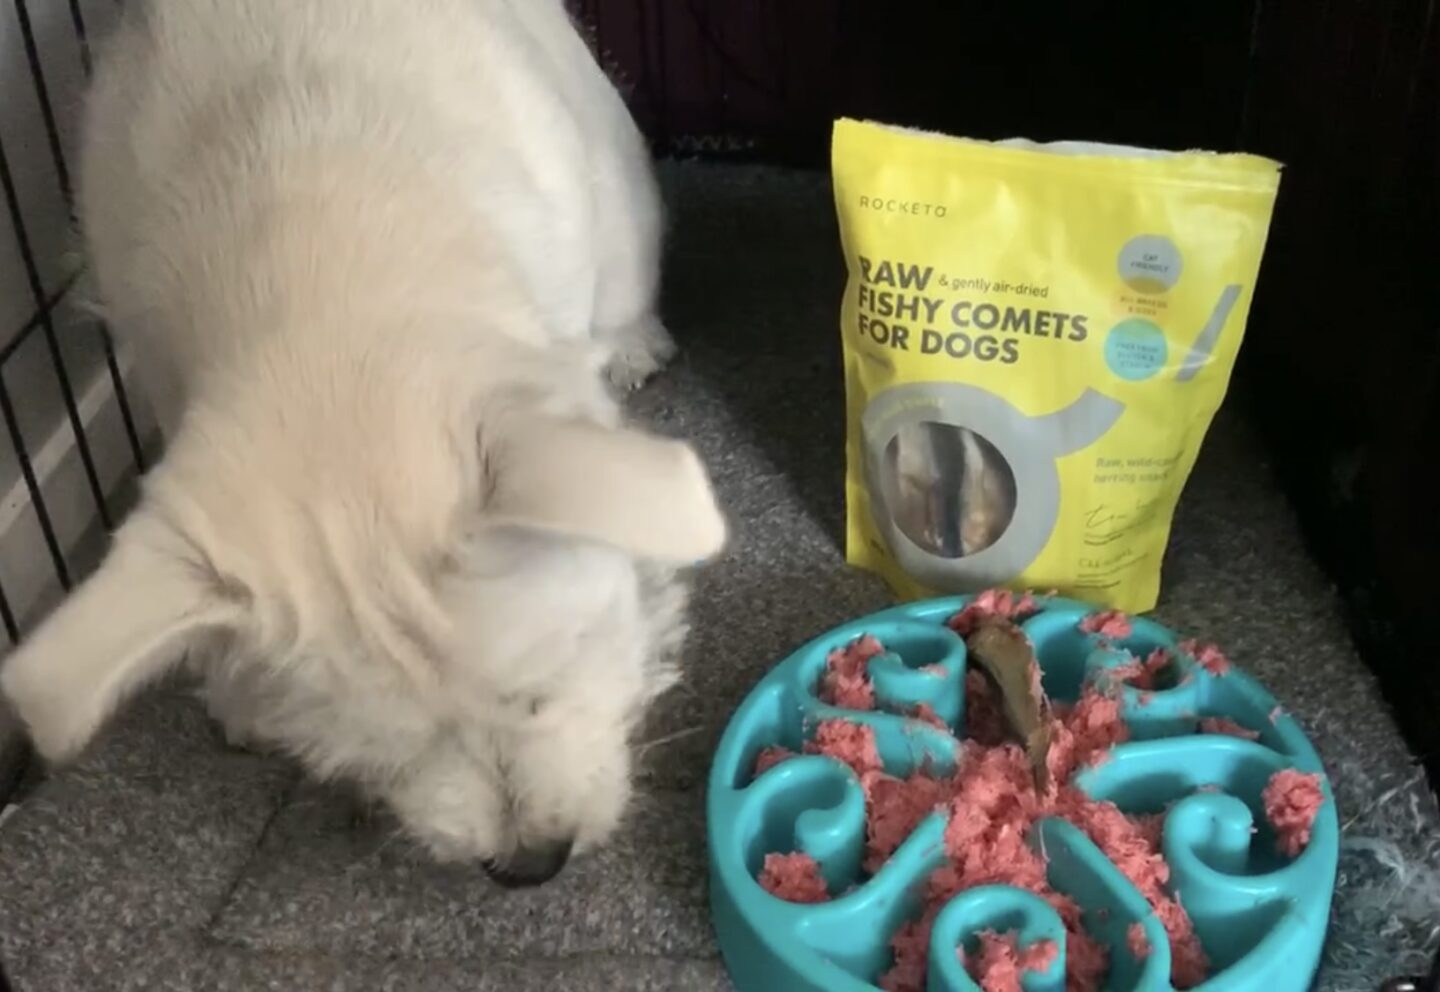 Rocketo raw fishy comets and raw dog food being eaten by a westie